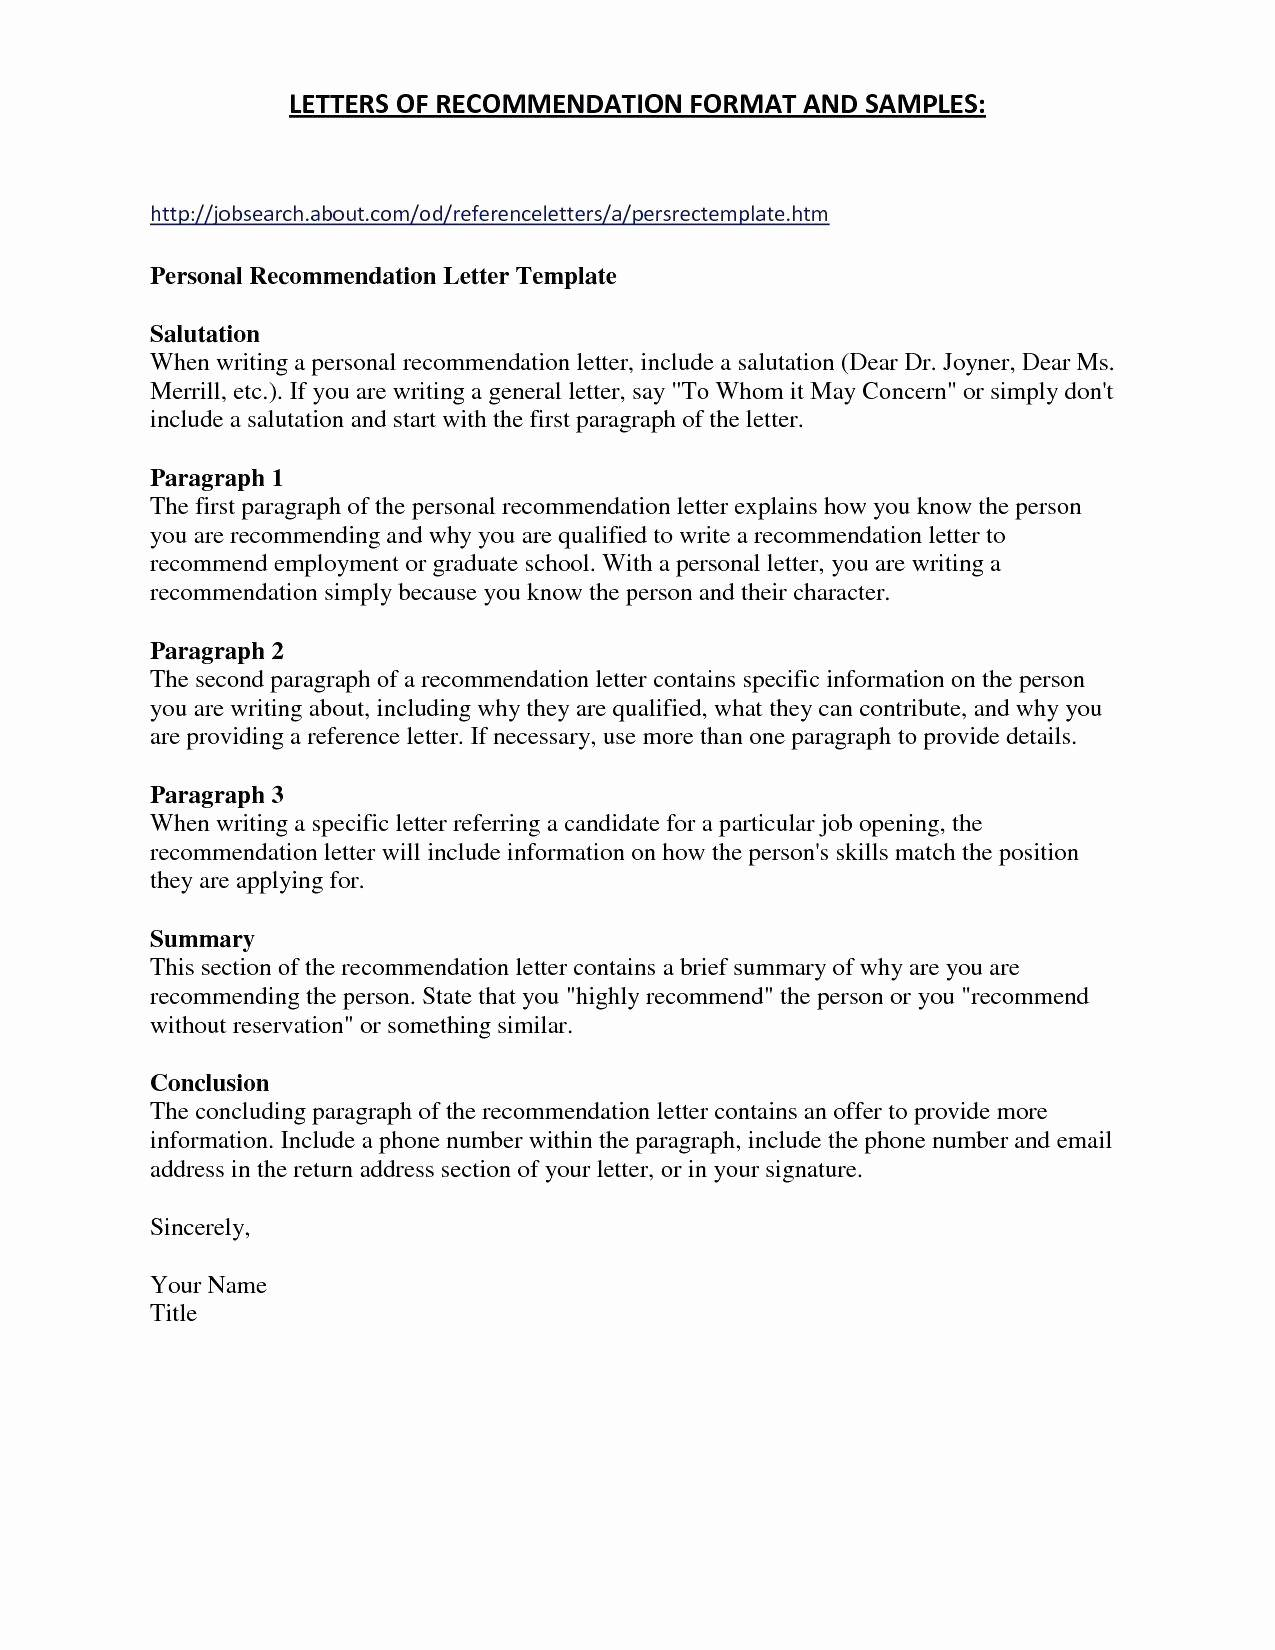 College Reference Letter Template - Mon Seal Template Awesome Fresh Pany Business Reference Letter